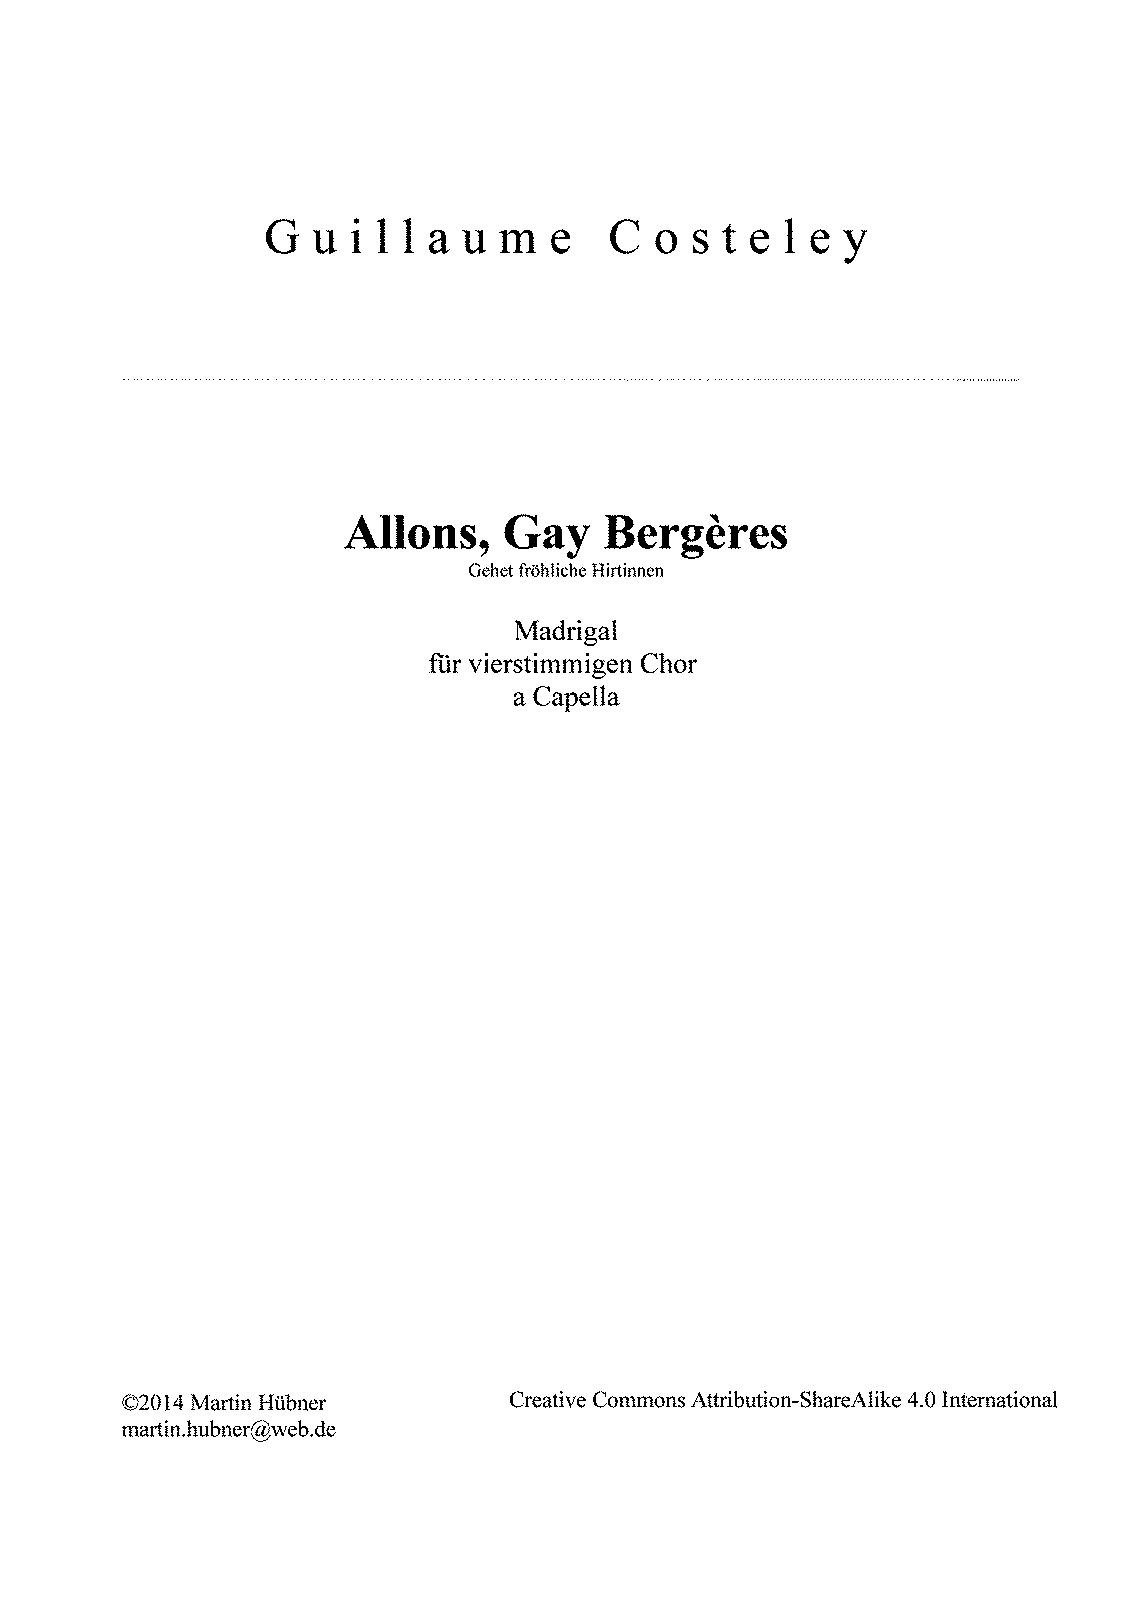 PMLP178391-Costeley - Allon gay bergeres.pdf